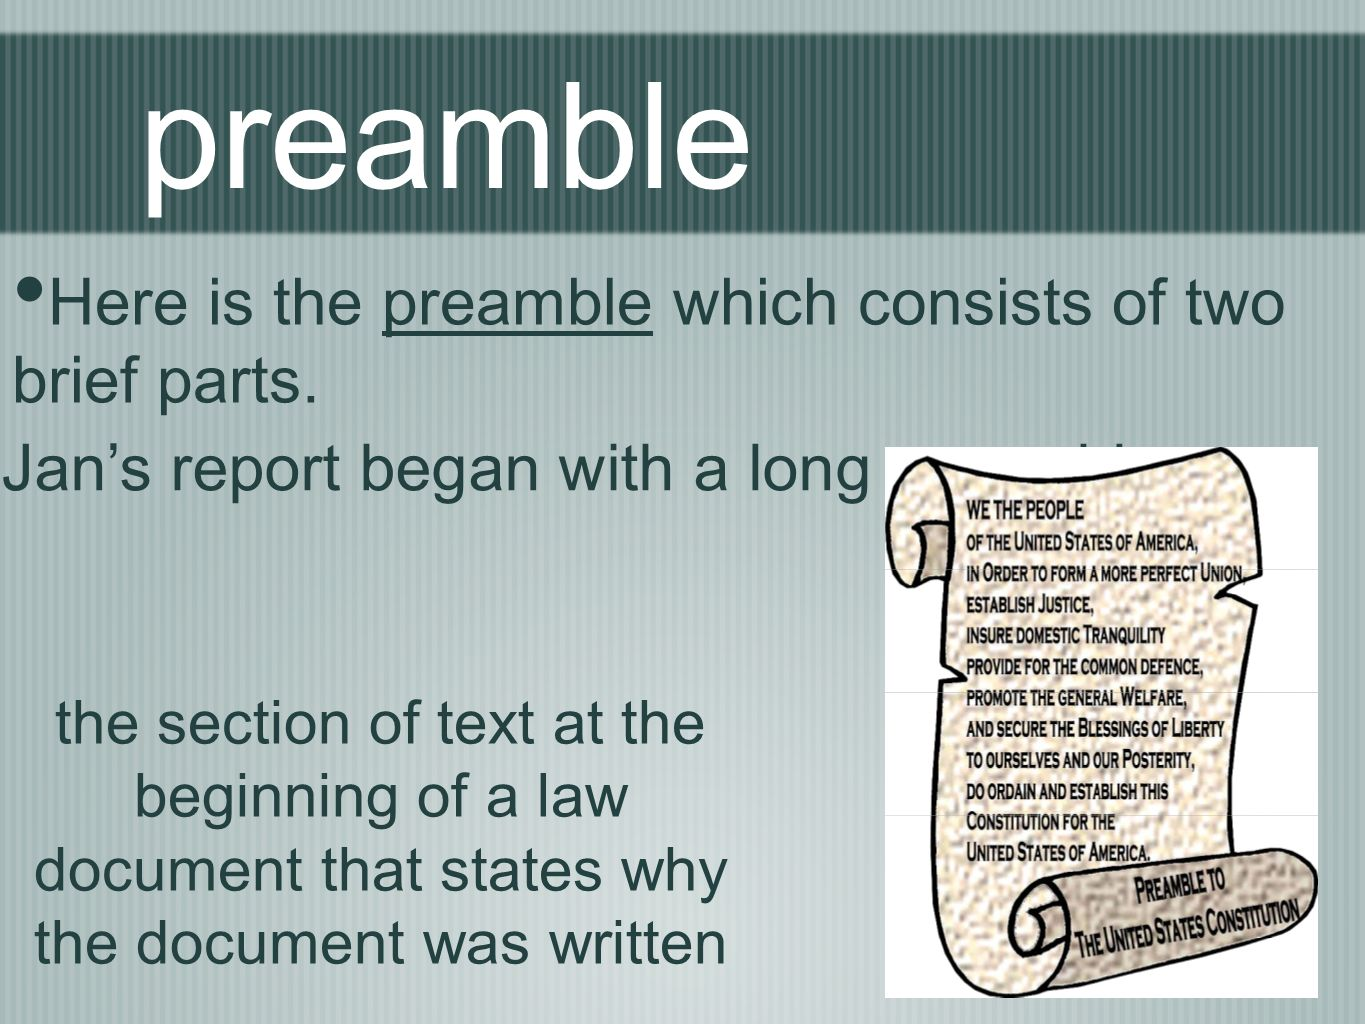 preamble Here is the preamble which consists of two brief parts.